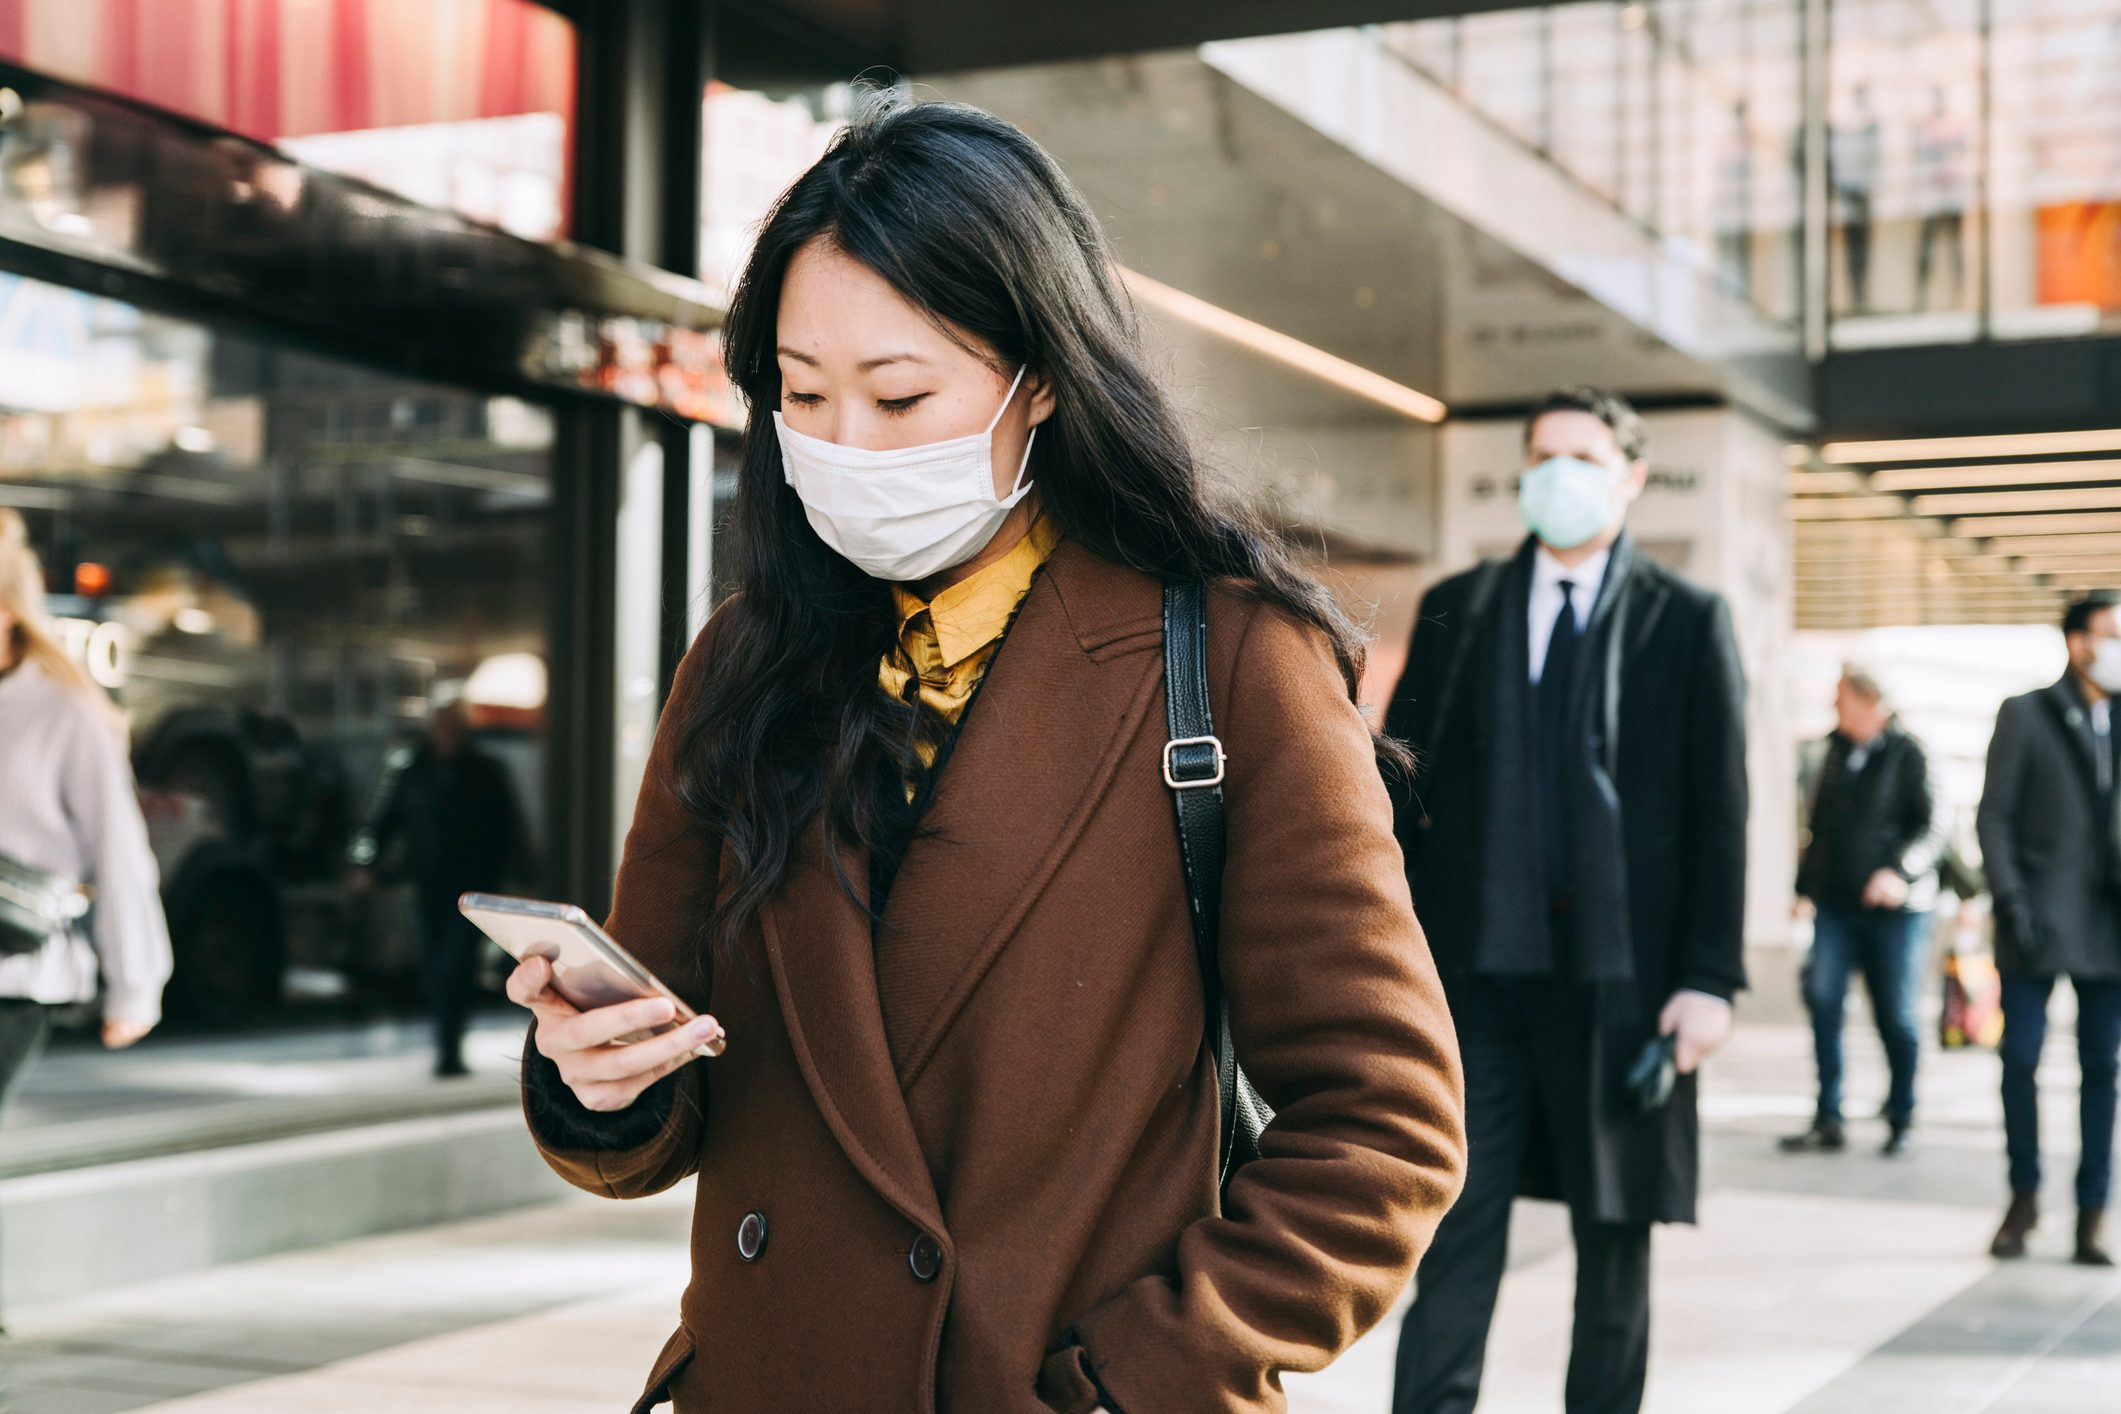 Woman with face mask walking in street using smartphone